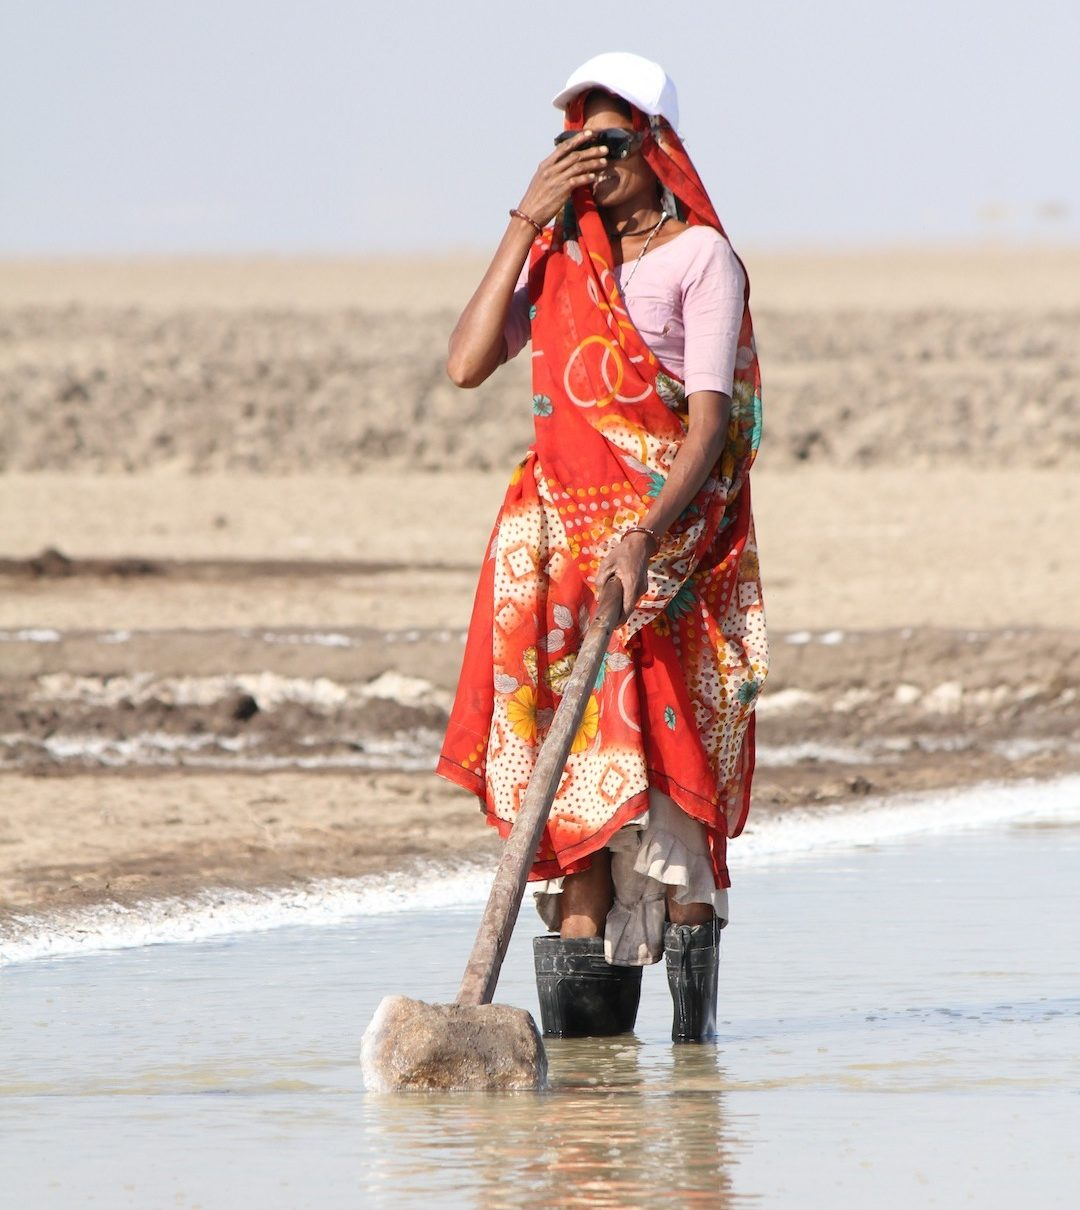 An Agariya woman working in the salt pan with safety gears like shades, gum boots and caps provided by the NGOs to avoid the harsh sun and salt water. Photo by Dhvanit Pandya/AHRM.